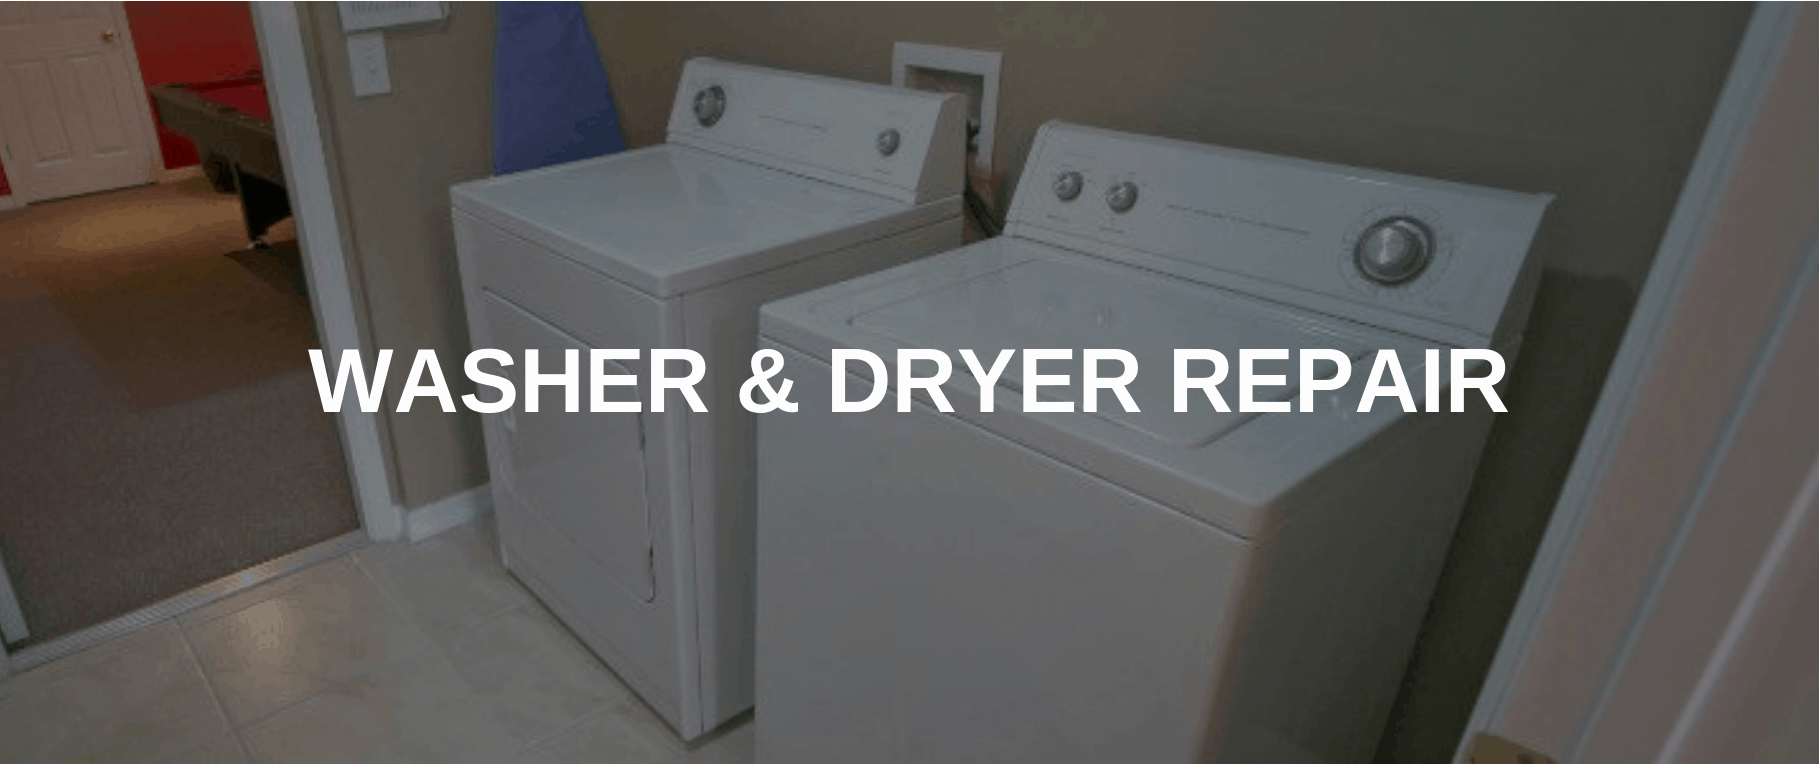 washing machine repair la mesa